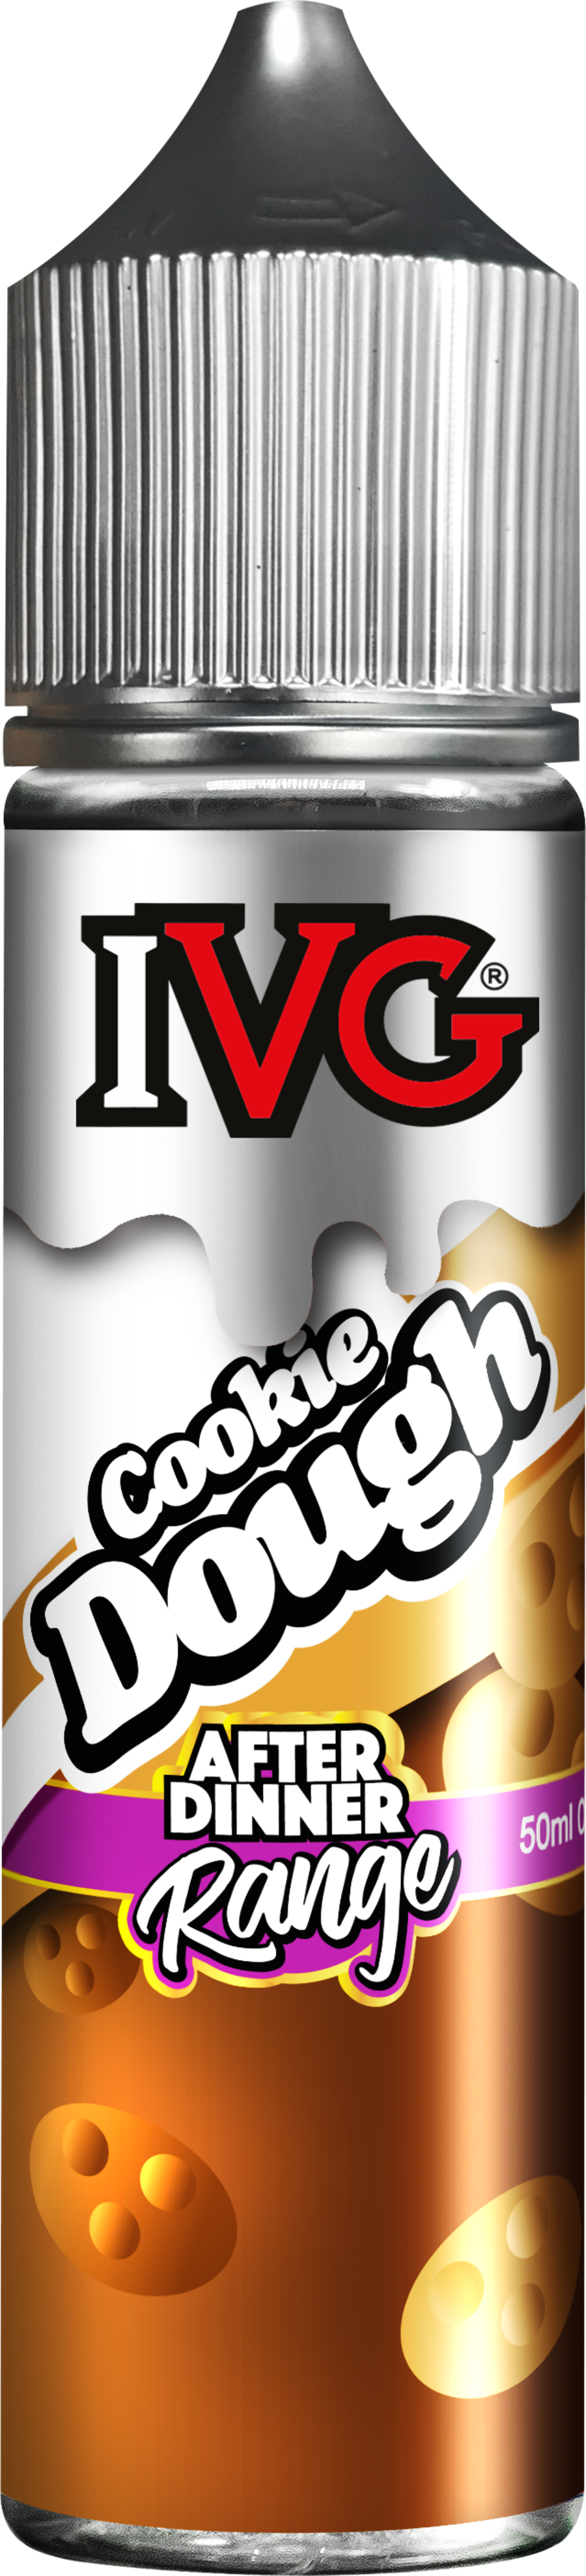 Cookie Dough By I VG After Dinner 50ml